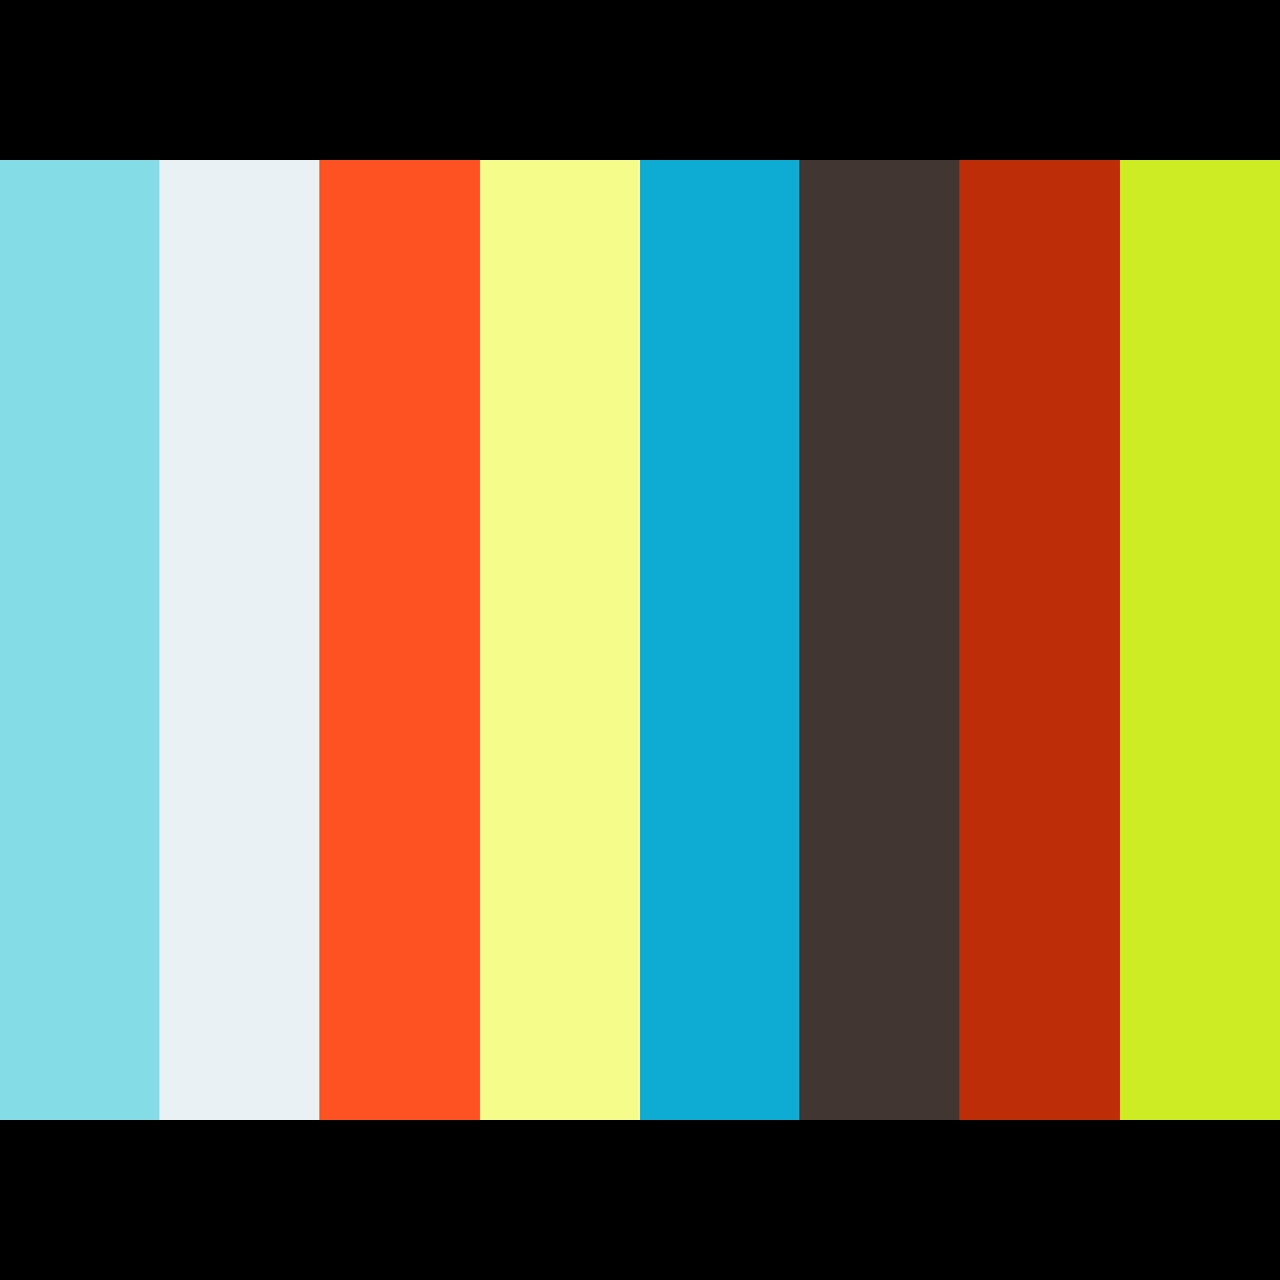 Claim Your Victory - David J Caron (Sports)